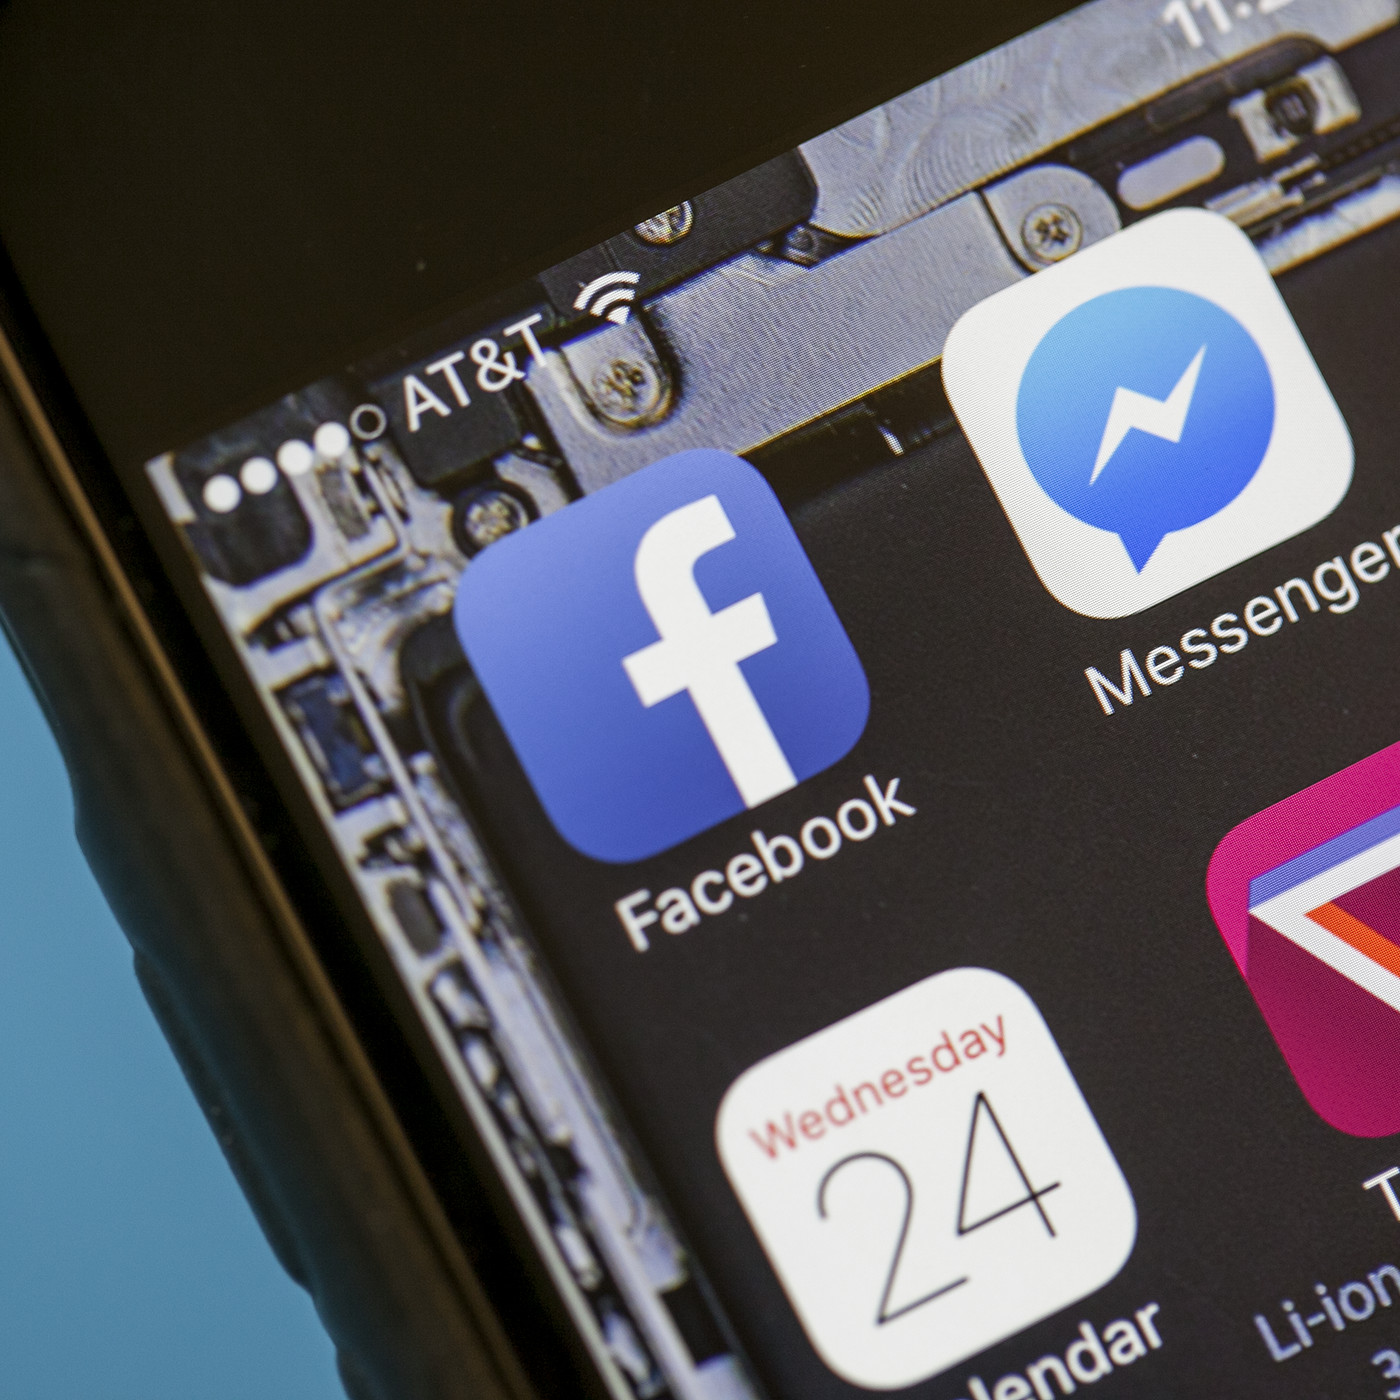 Facebook Messenger could be returning to the main Facebook app - The